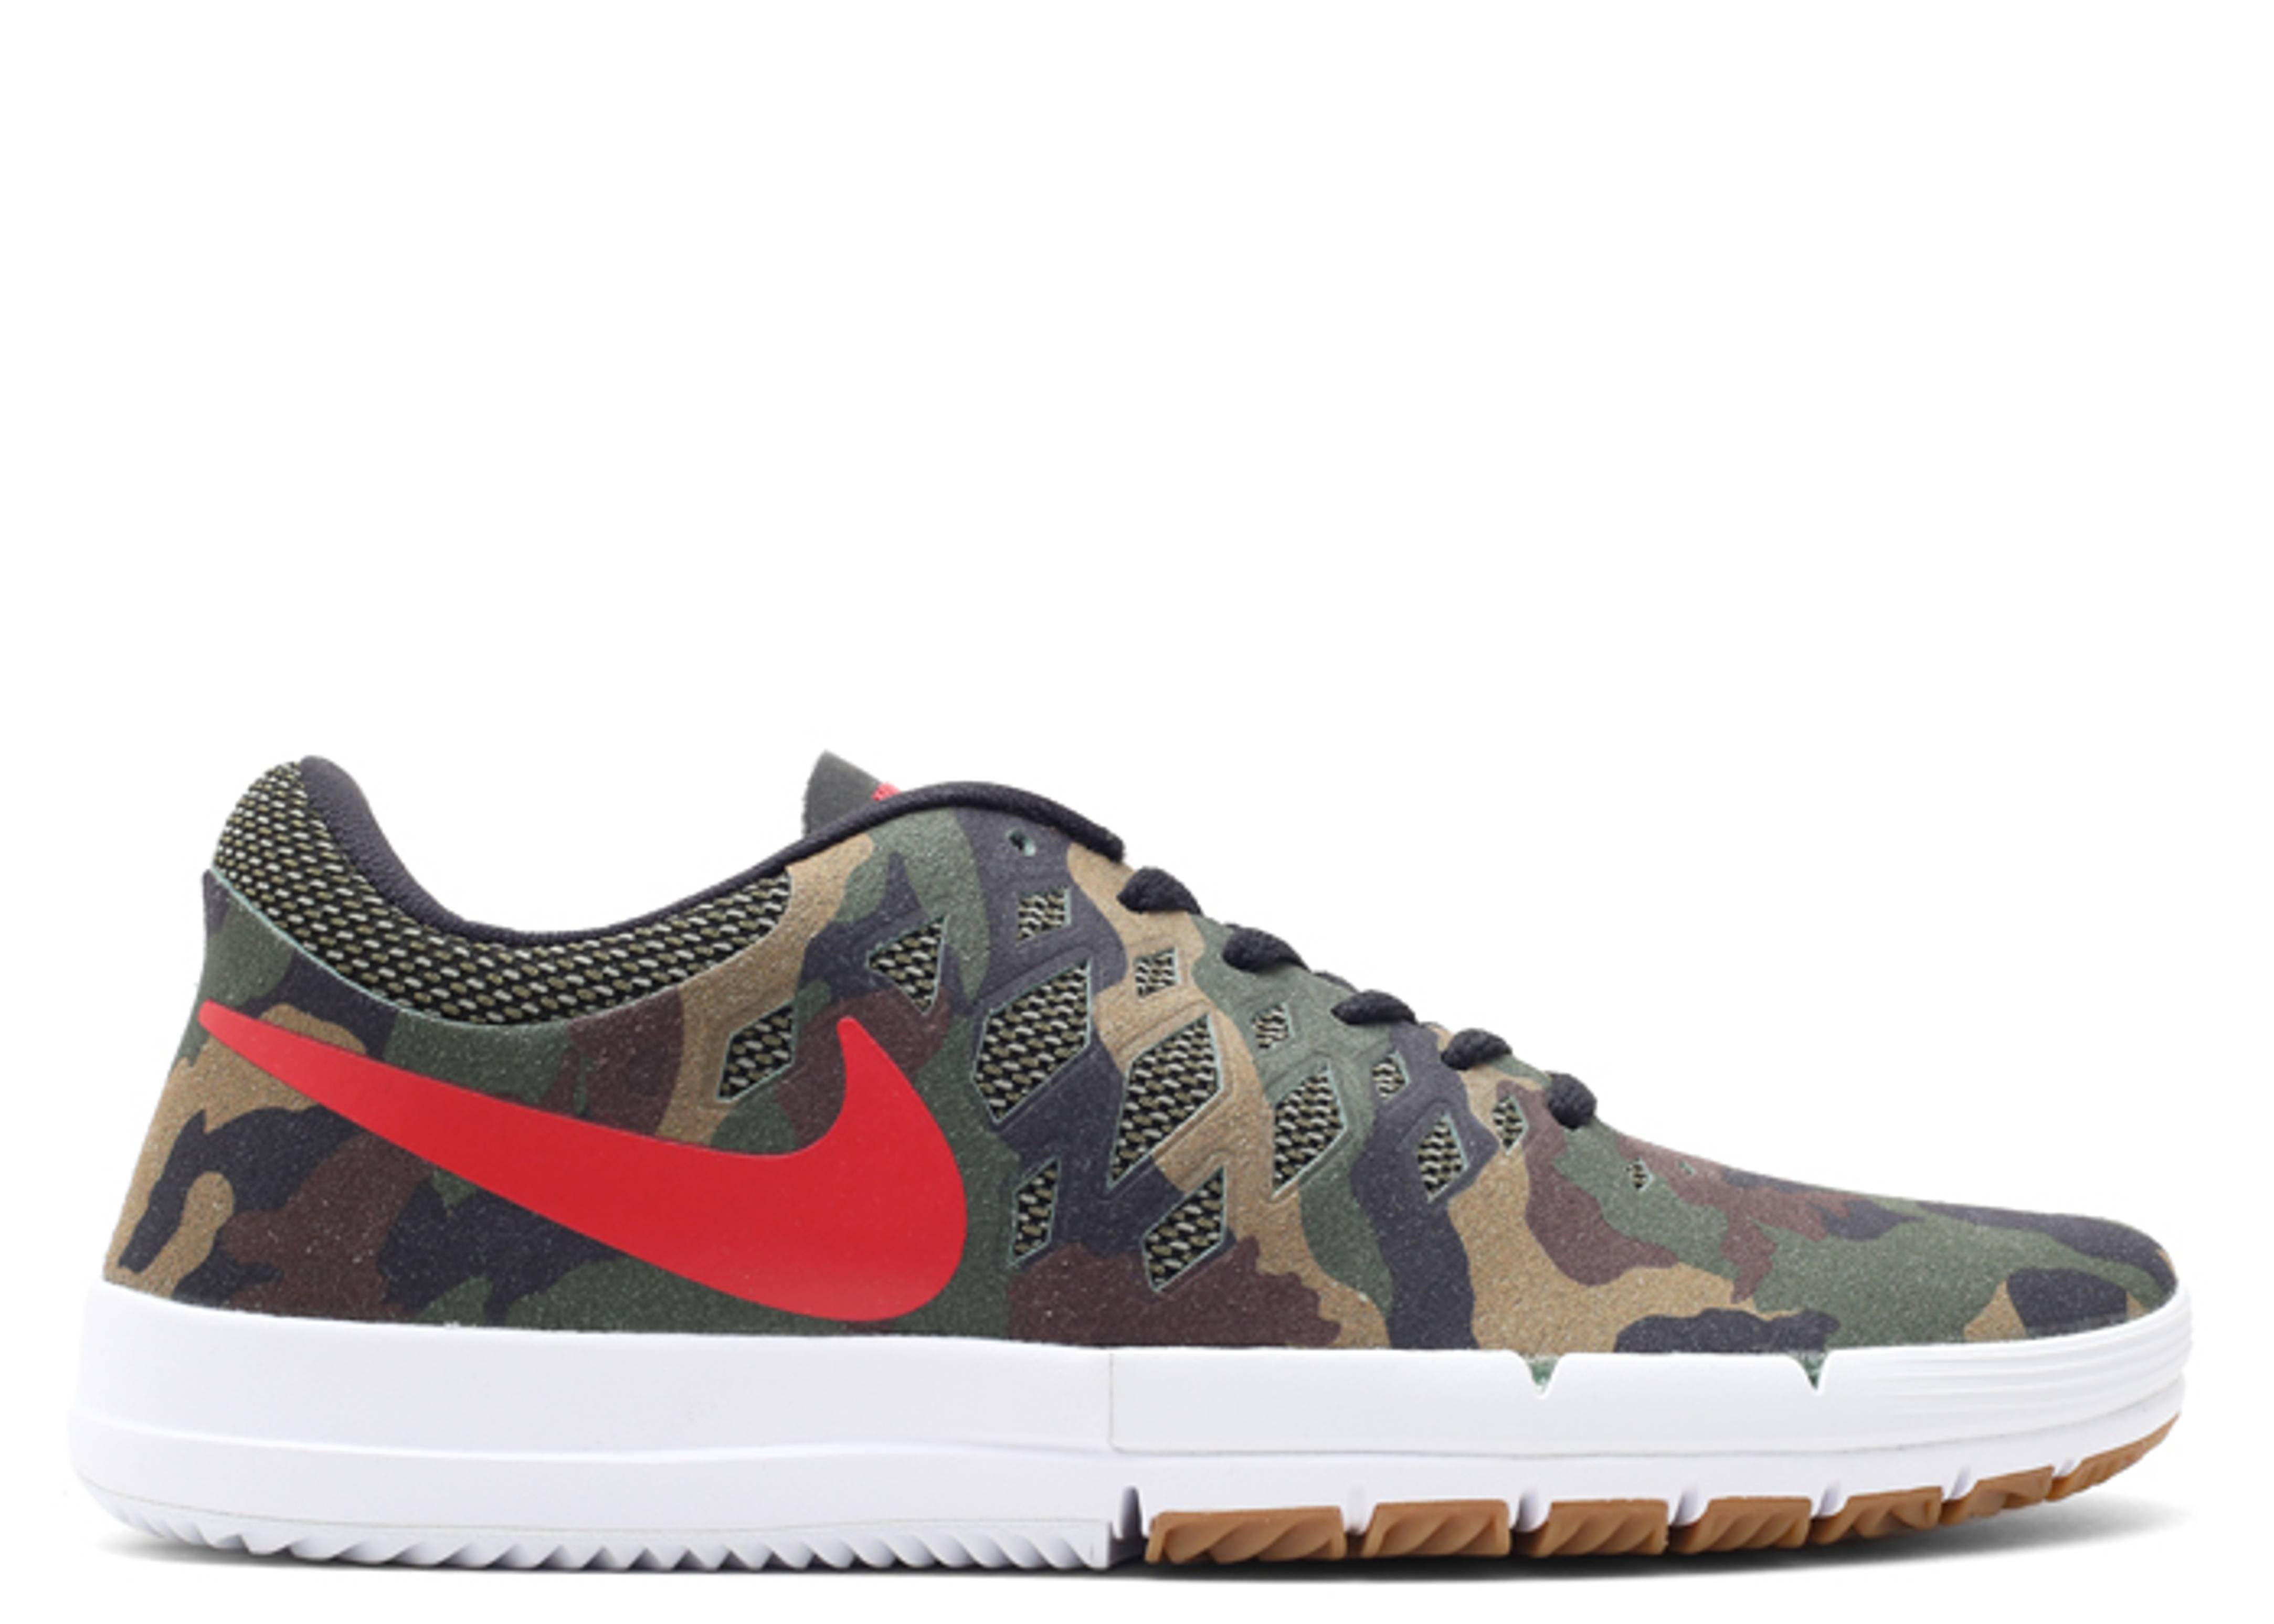 nike sb free rose city fortress green/gym red/black suburban